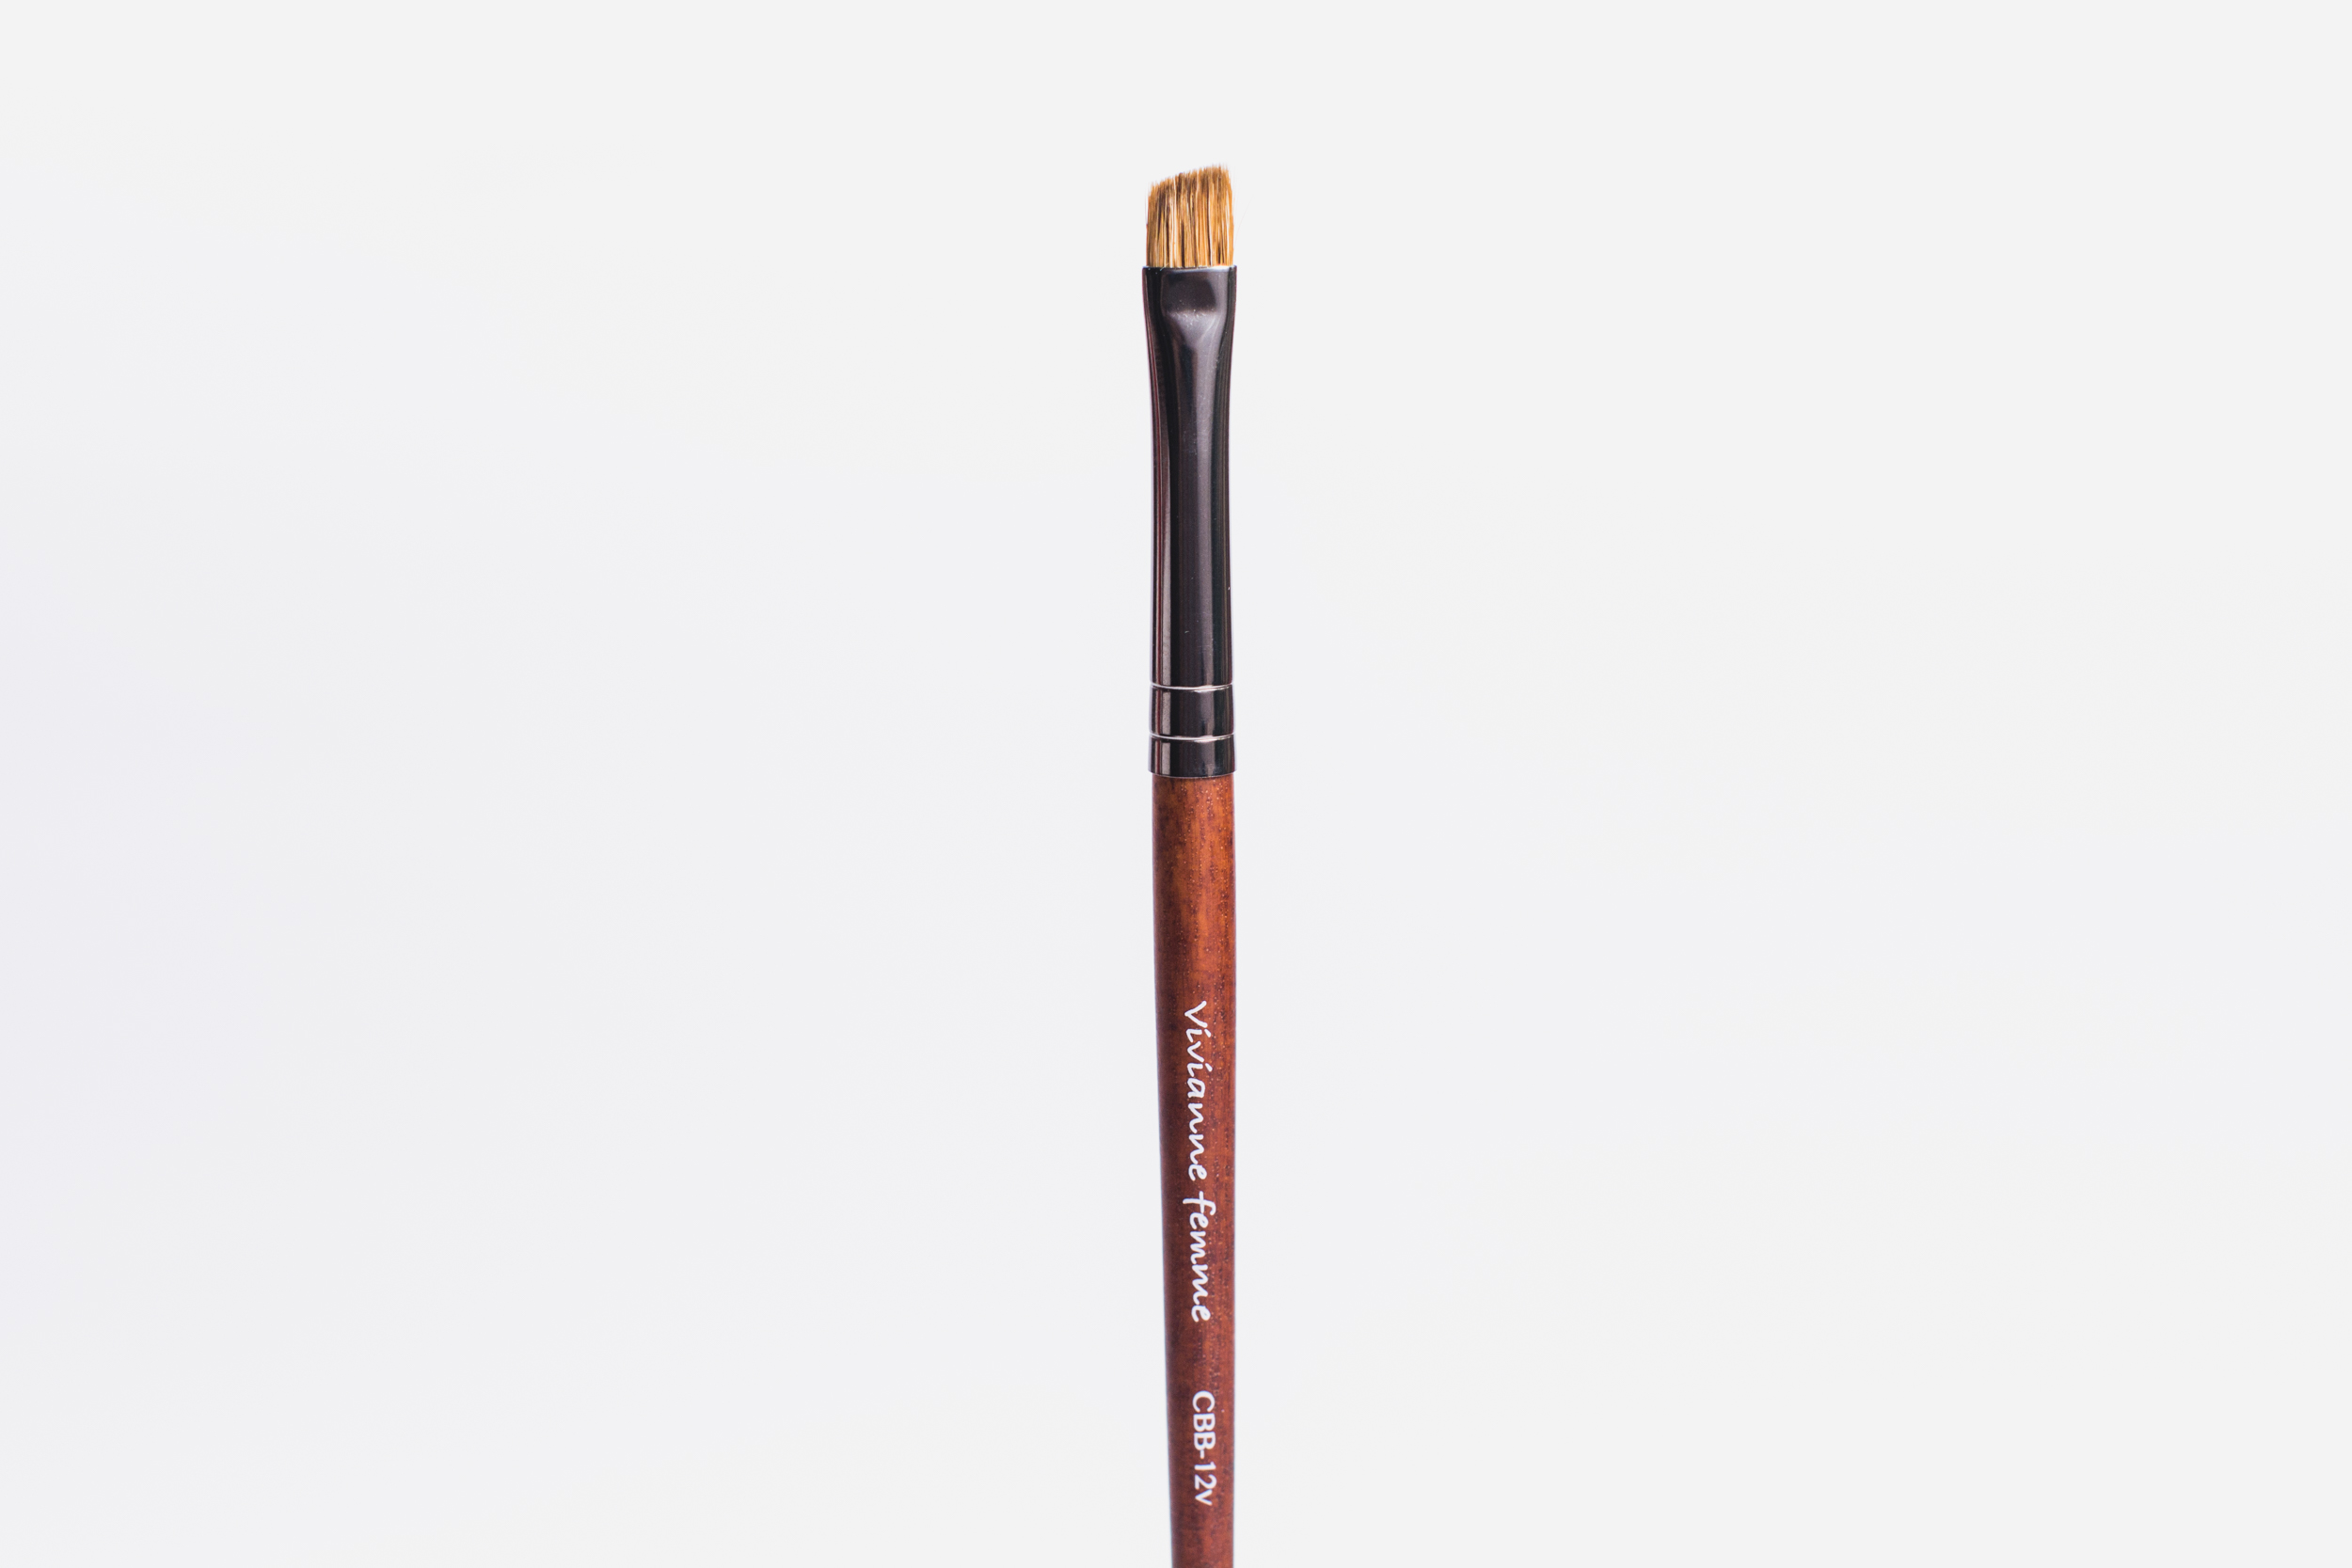 Vivianne Femme Angled Eye Brow Brush (P445)